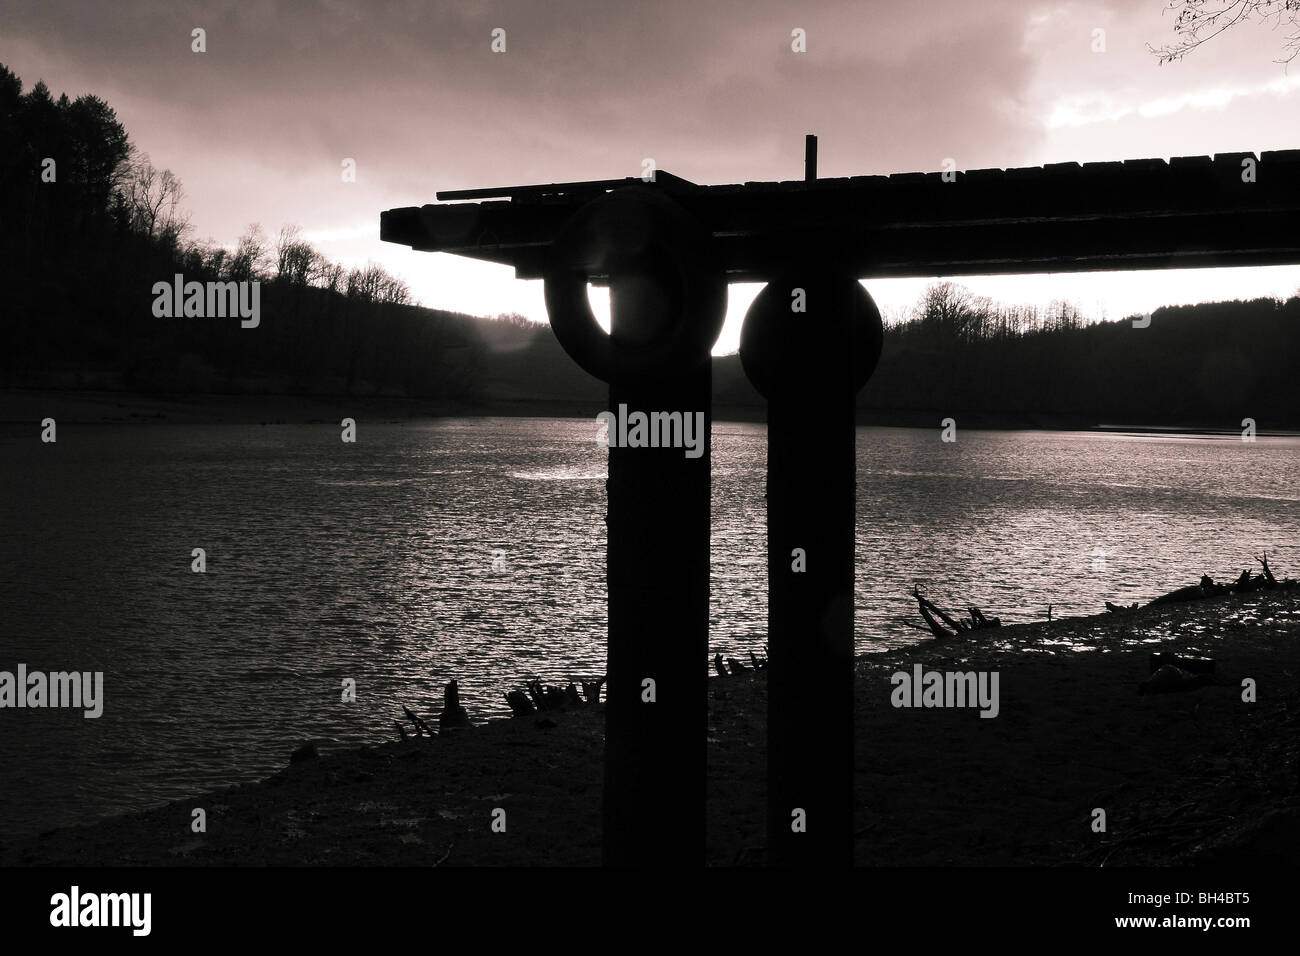 Tinted black and white composition of an old jetty above a drained lake in the Limousin region against stormy sky. - Stock Image